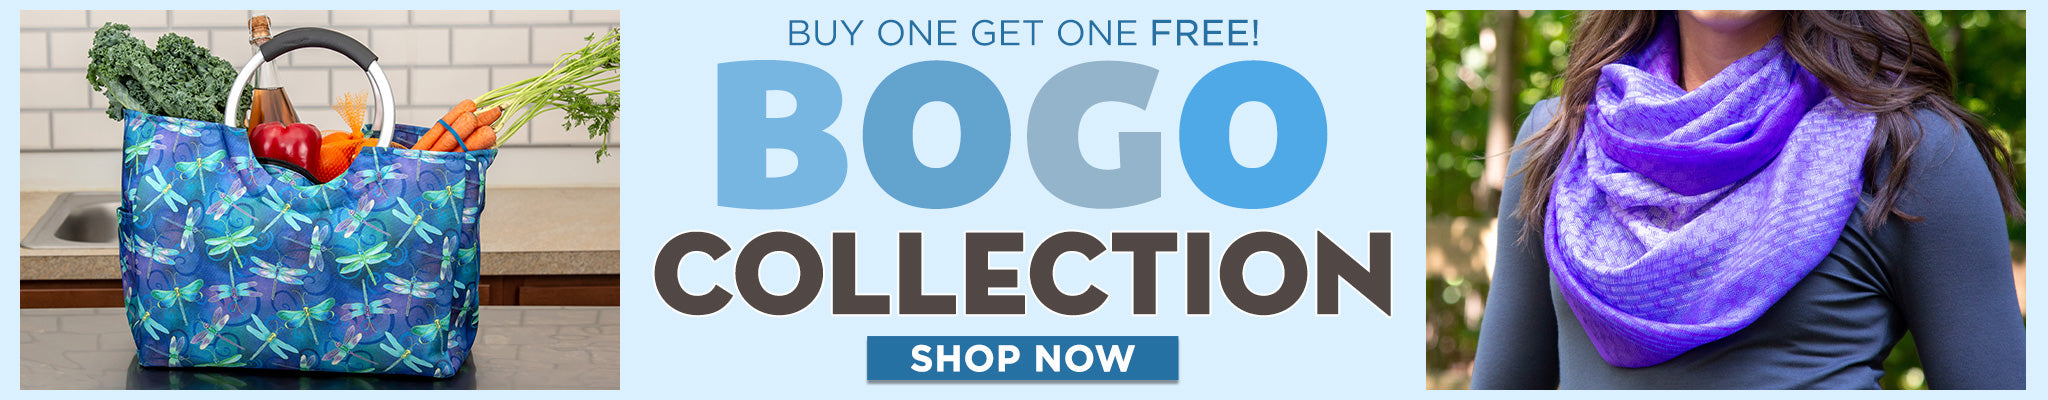 BOGO Collection | Shop Now!